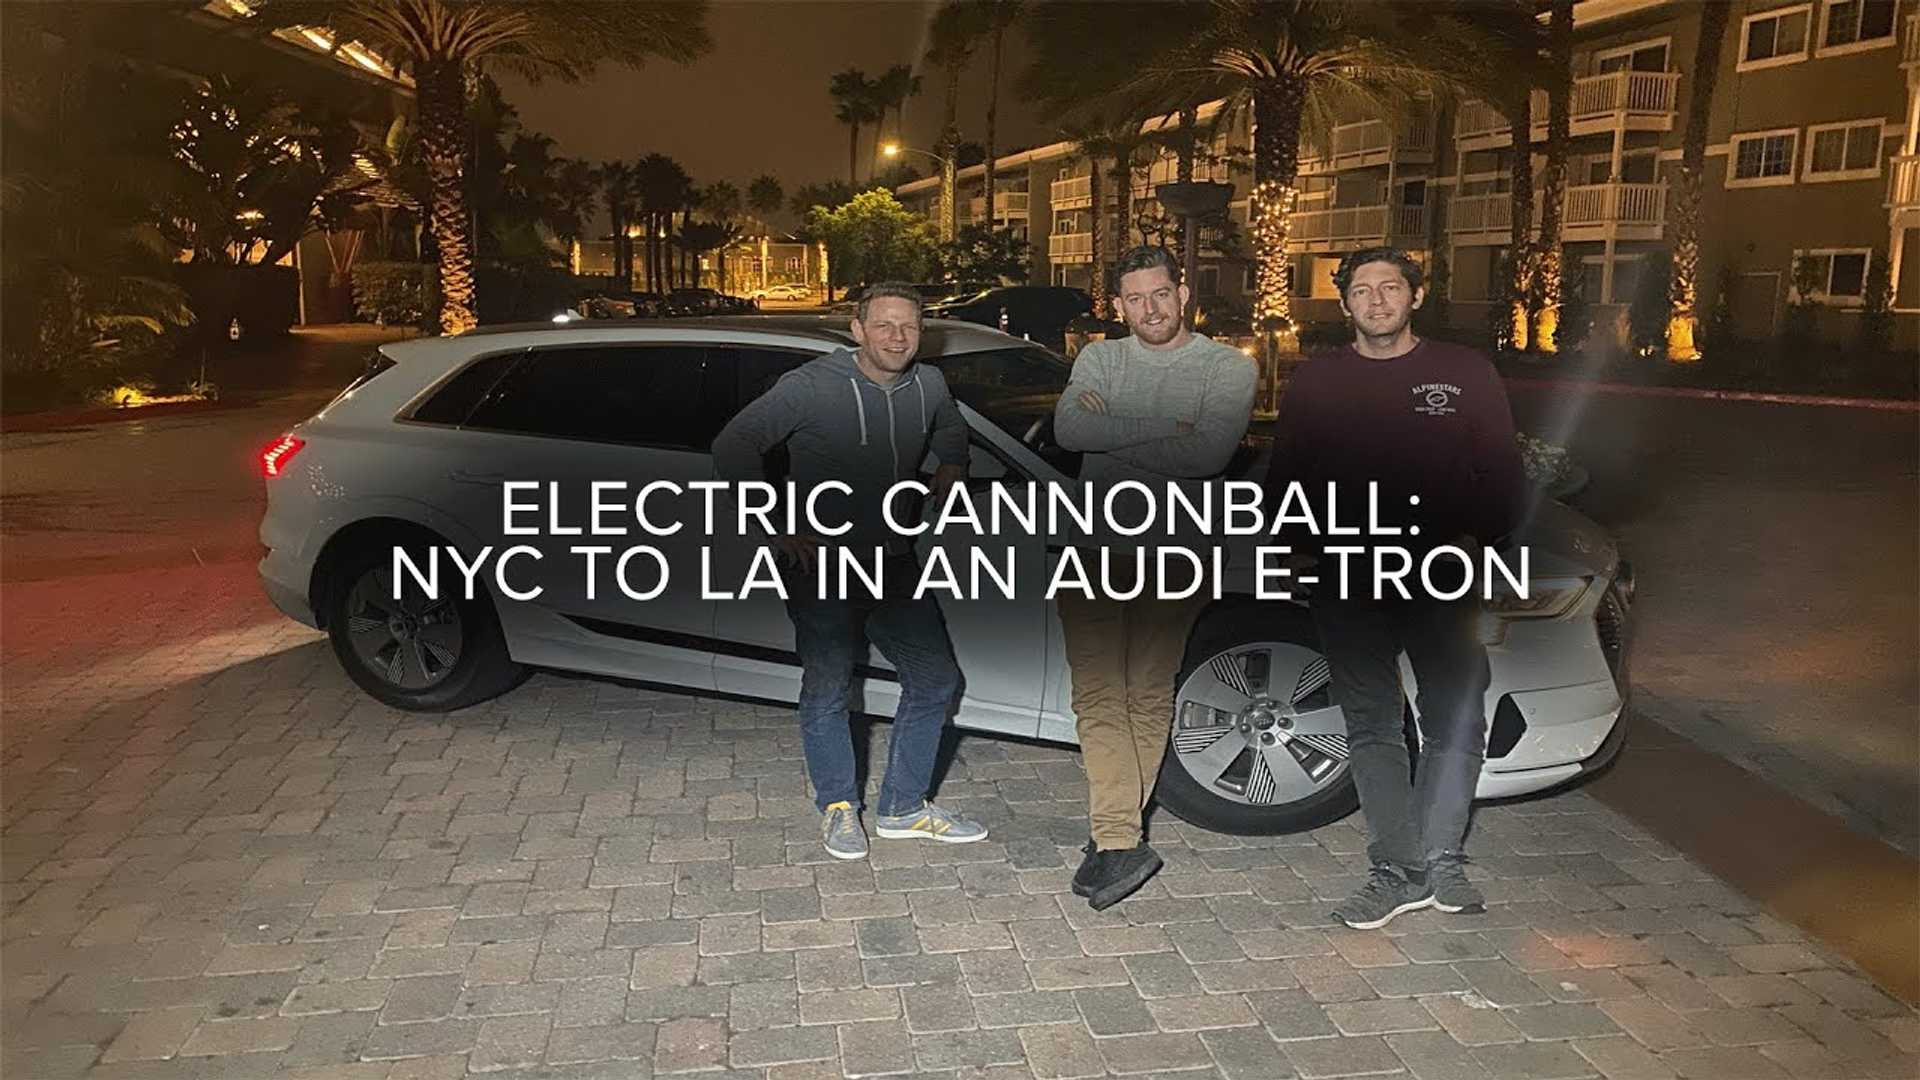 Audi e-Tron Cannonball Run Attempt: Range & Fast-Charging Tested